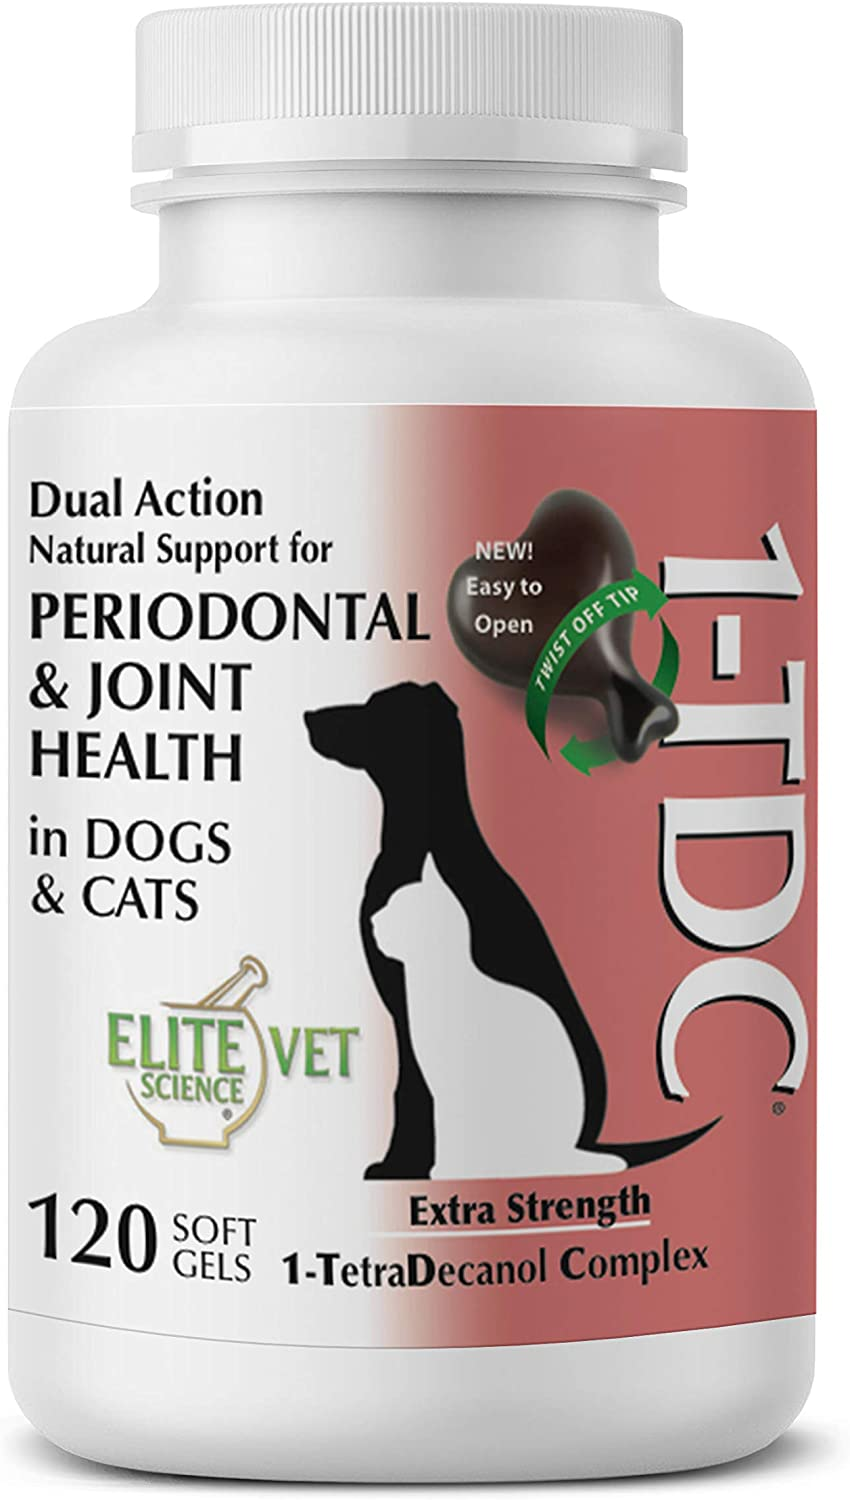 1TDC Dual Action Natural Support – Twist Off Soft Gels – Delivers 4 Major Health Benefits for Dogs & Cats – Supports Oral Health, Hip & Joint Health, Muscle & Stamina Recovery, Skin & Coat Health 71UAjEECCML